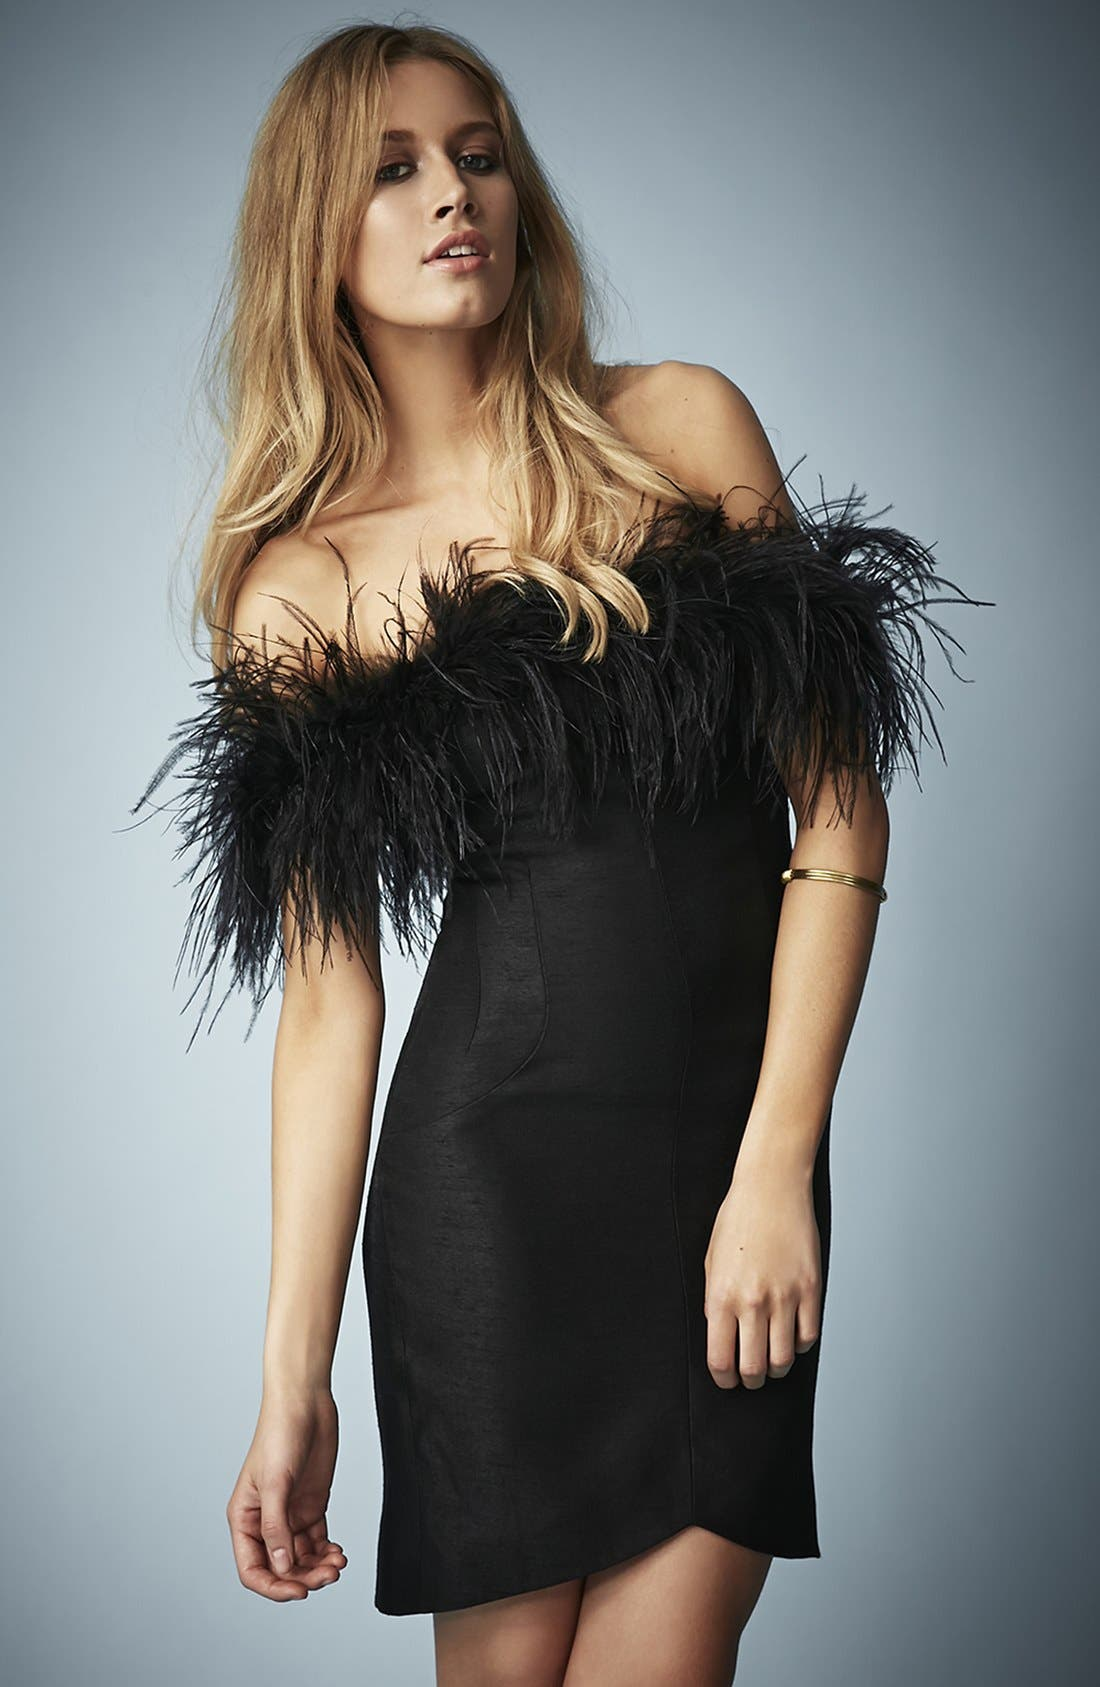 Alternate Image 1 Selected - Kate Moss for Topshop Feather Off Shoulder Cocktail Dress